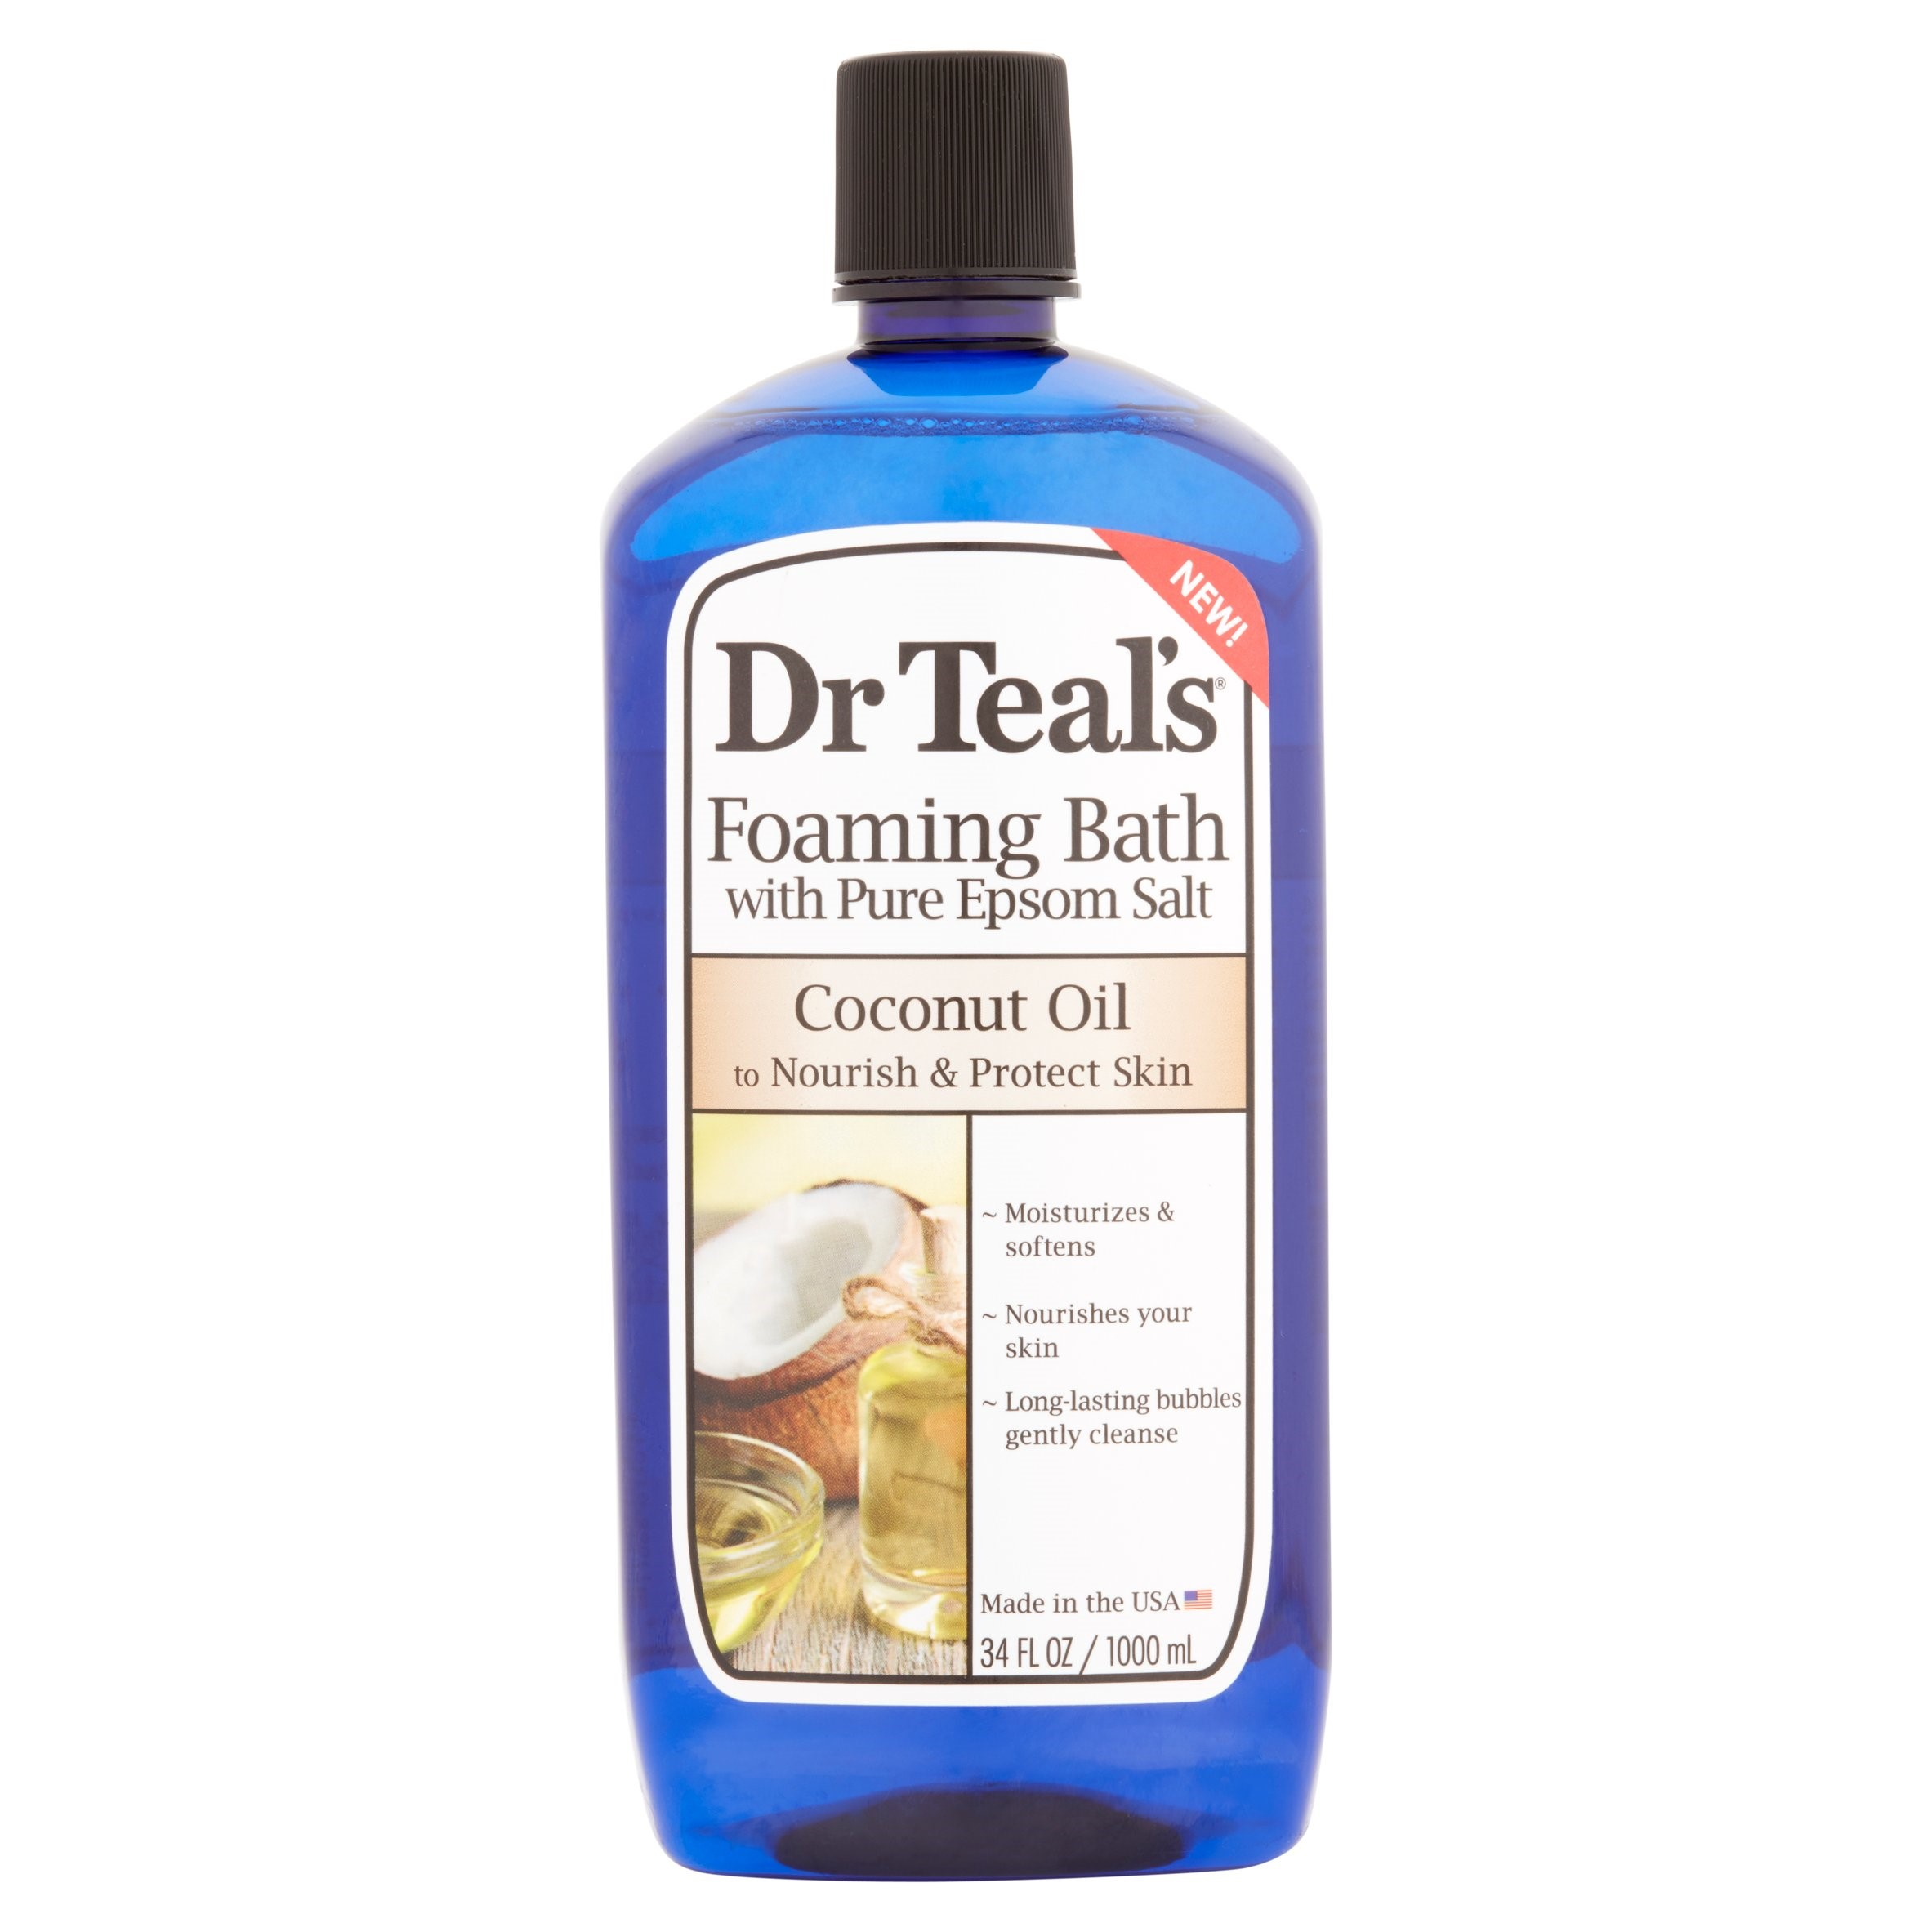 Dr Teal's Foaming Bubble Bath with Pure Epsom Salt and Coconut Oil, 34 fl oz